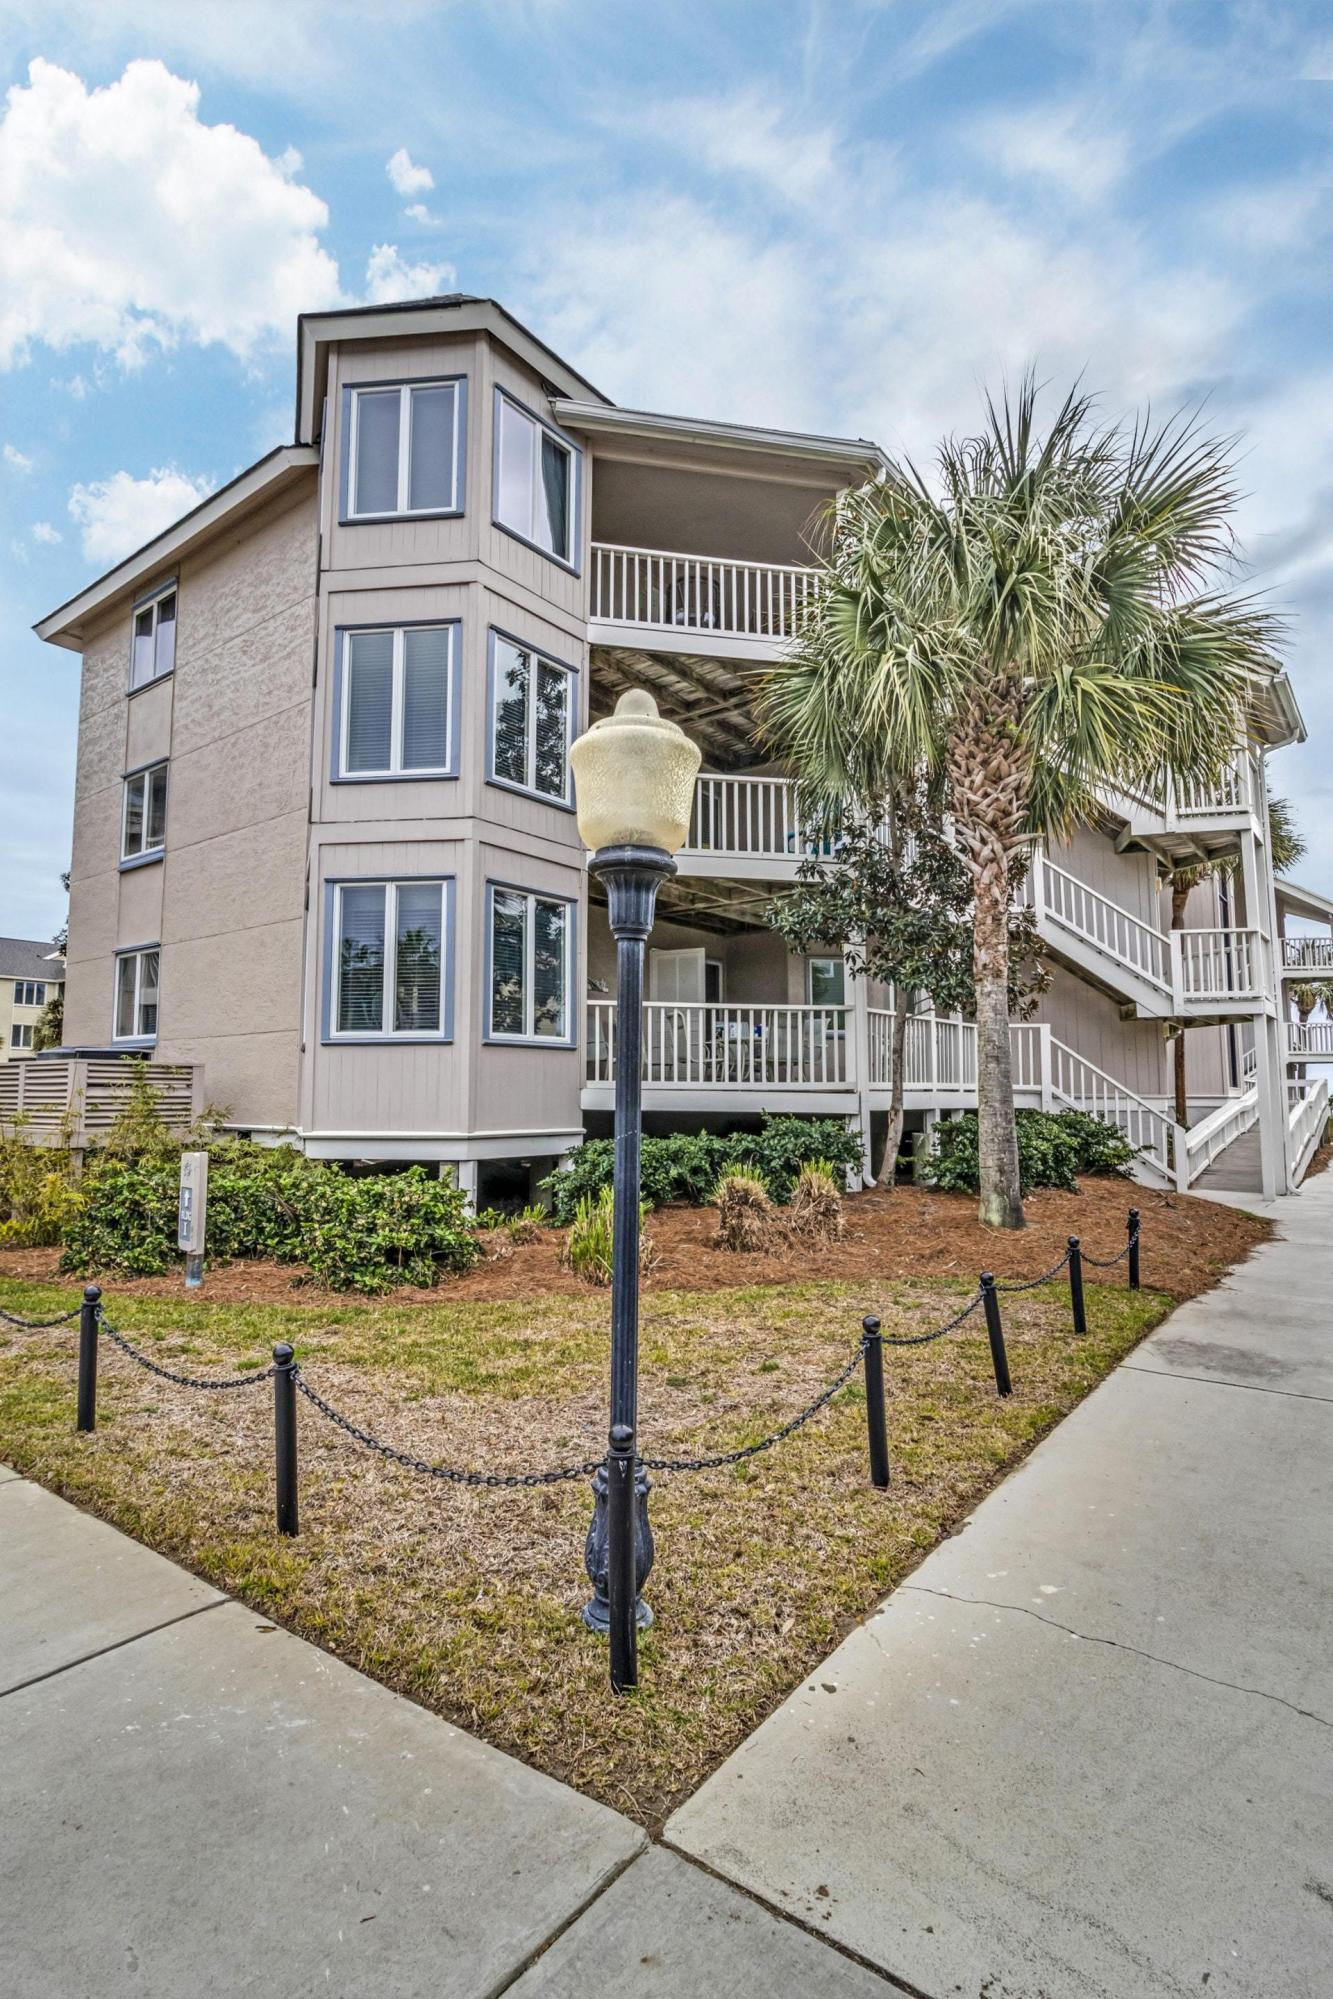 Wild Dunes Resort Homes For Sale - 102 I Tidewater, Isle of Palms, SC - 9